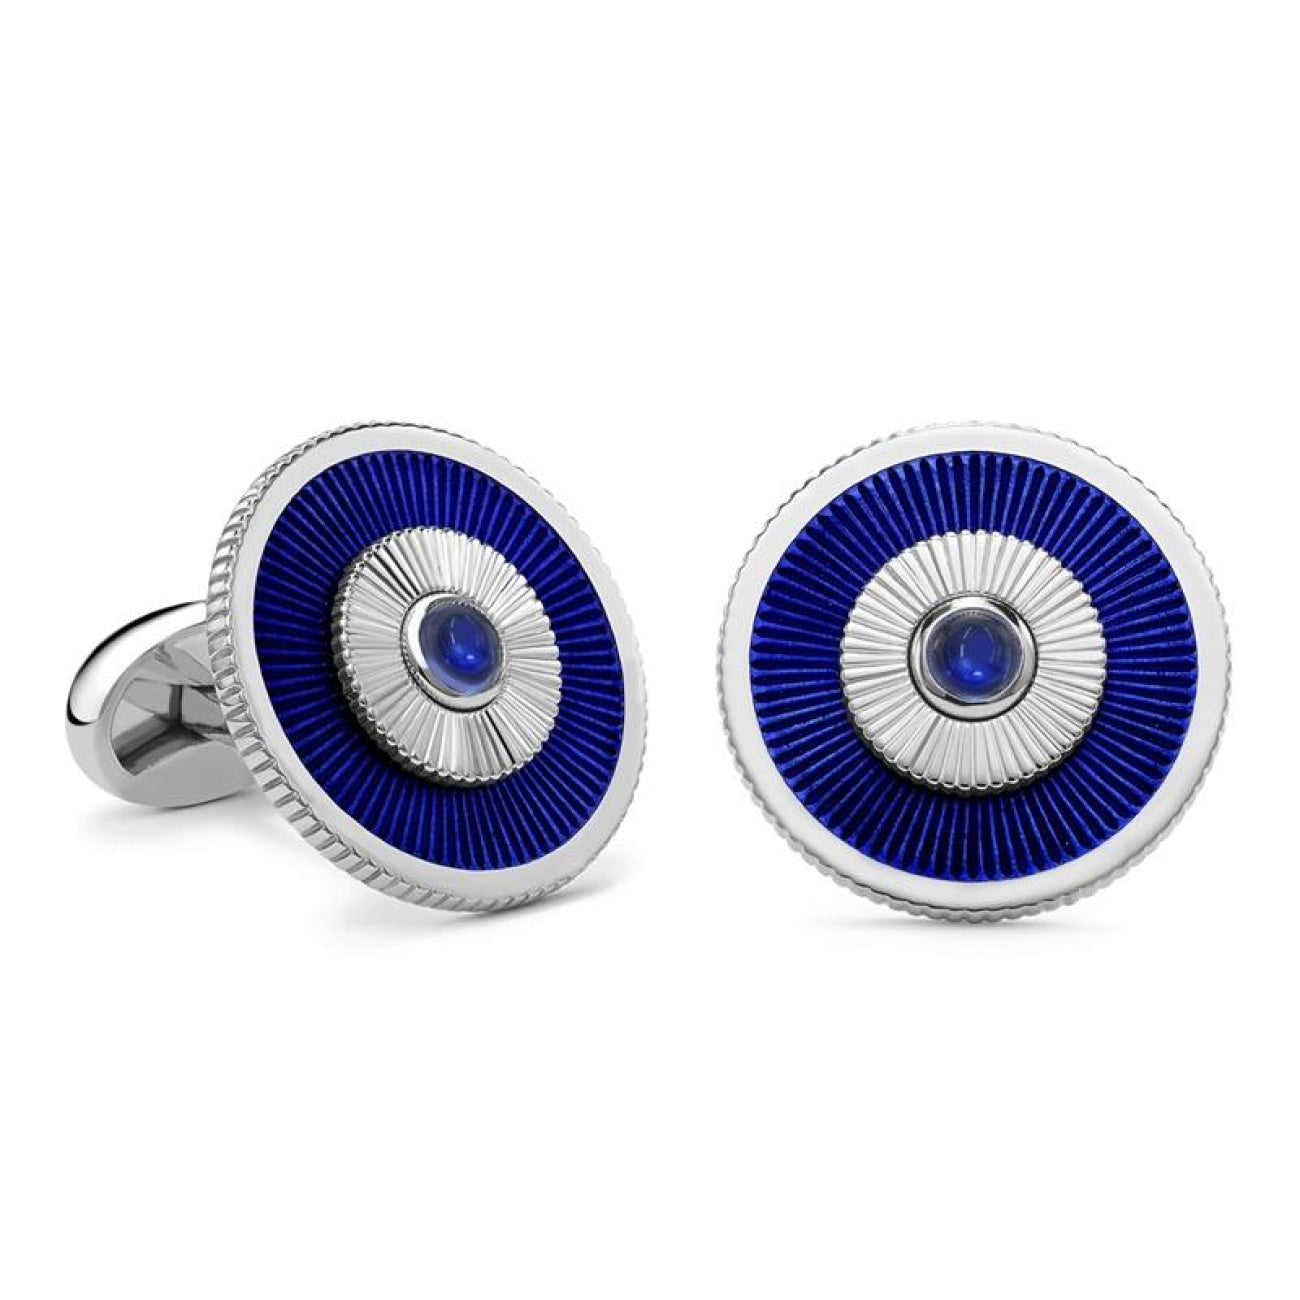 Fabergé Accessories - 18K WHITE GOLD BLUE SAPPHIRE CUFFLINKS WITH GUILLOCHÉ ENAMEL | Manfredi Jewels